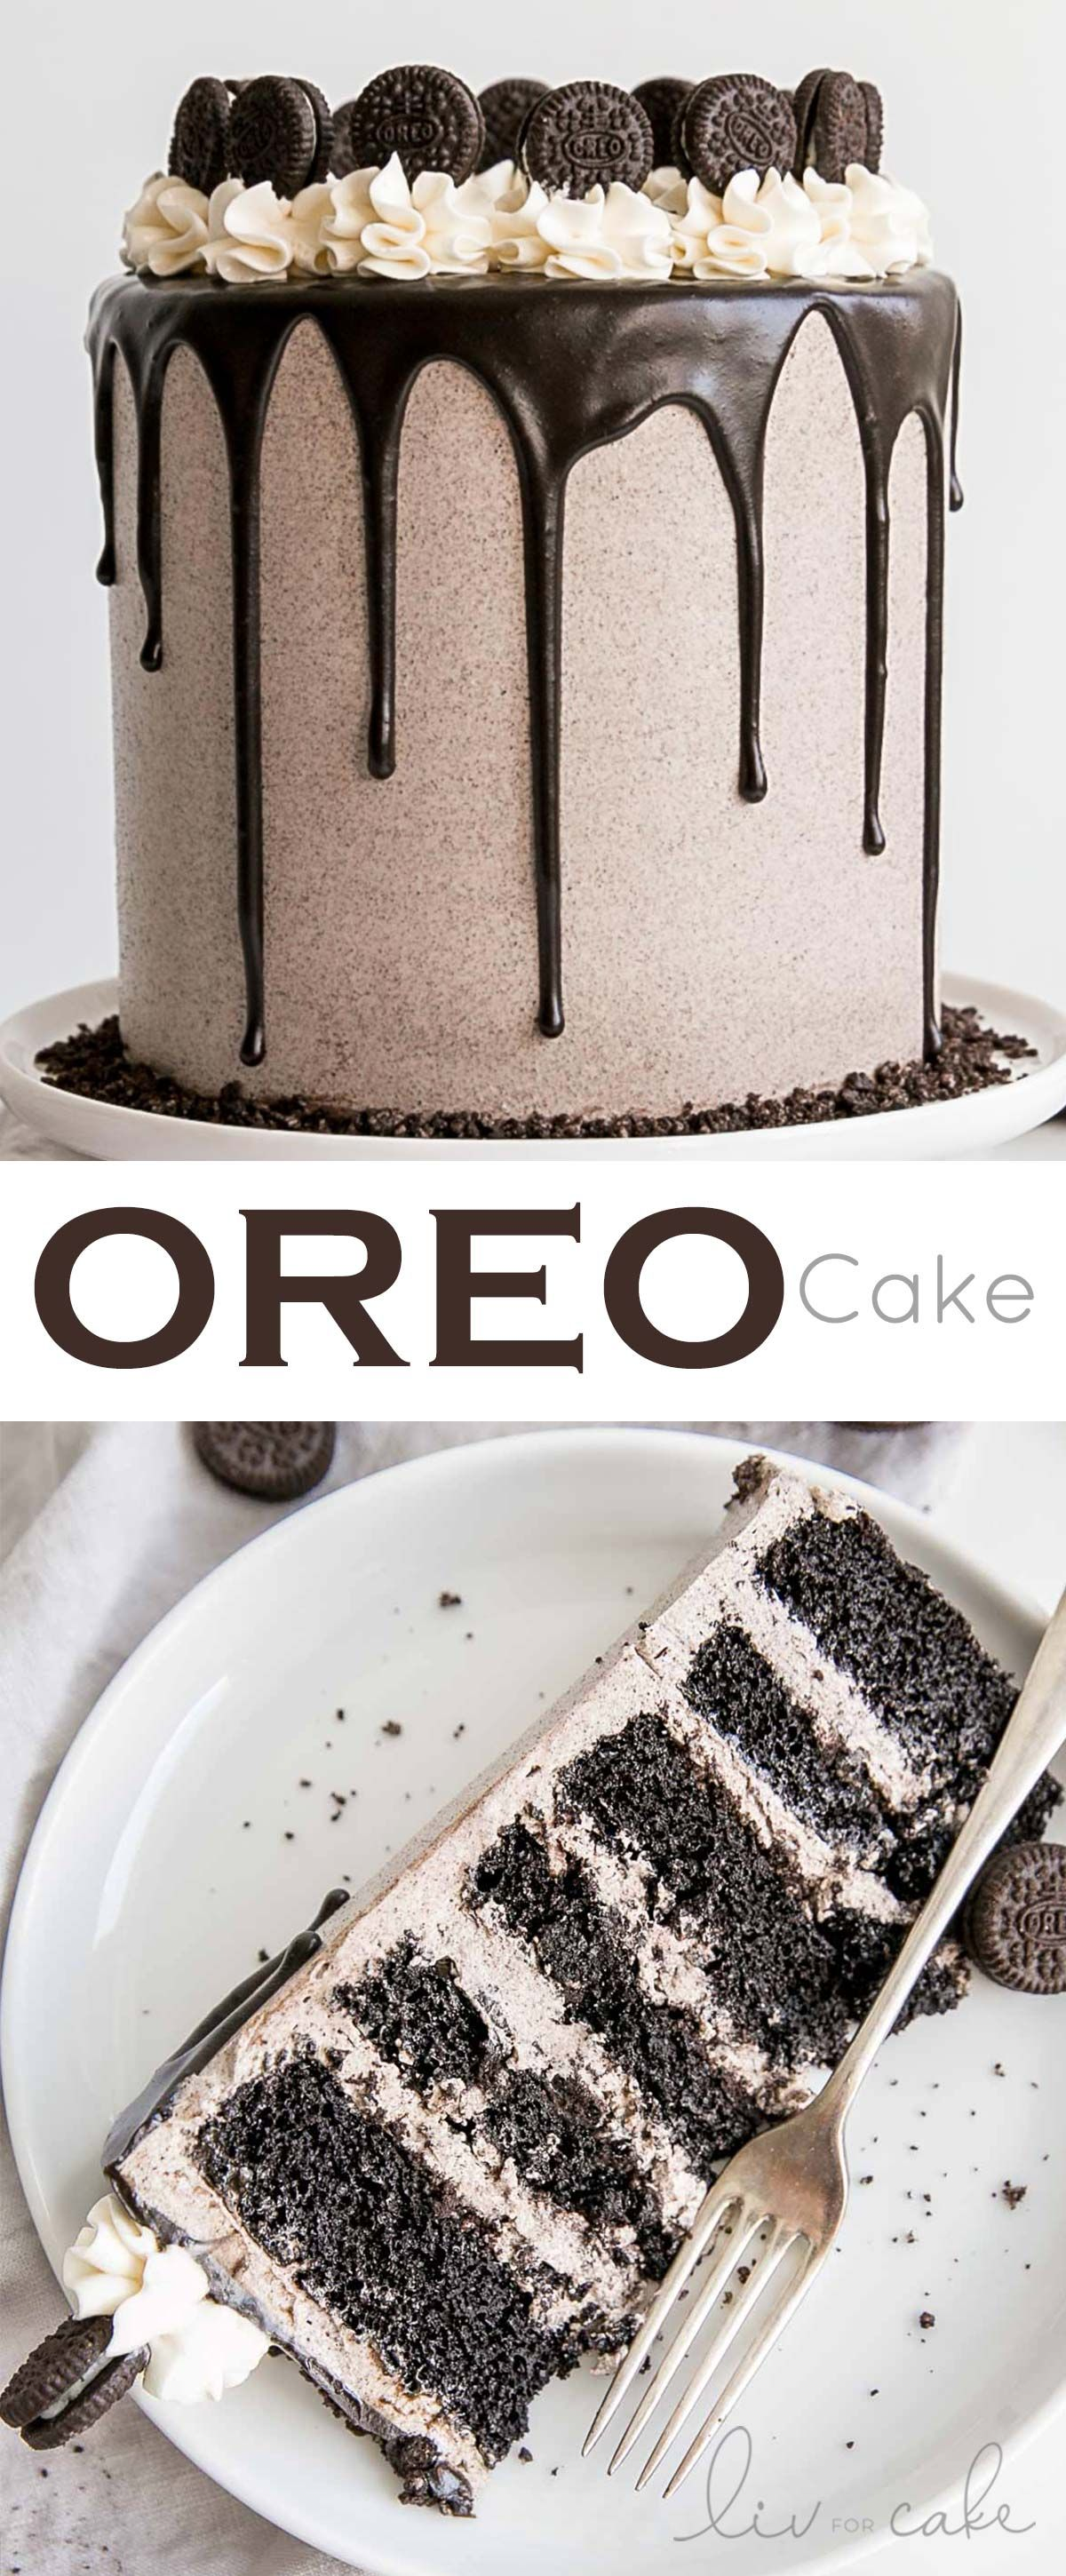 Oreo Cake! Six decadent layers of Oreo cake, Oreo buttercream, and a dark chocolate ganache. Perfect for the cookies and cream lover in your life! #cookiesandcreamfrosting